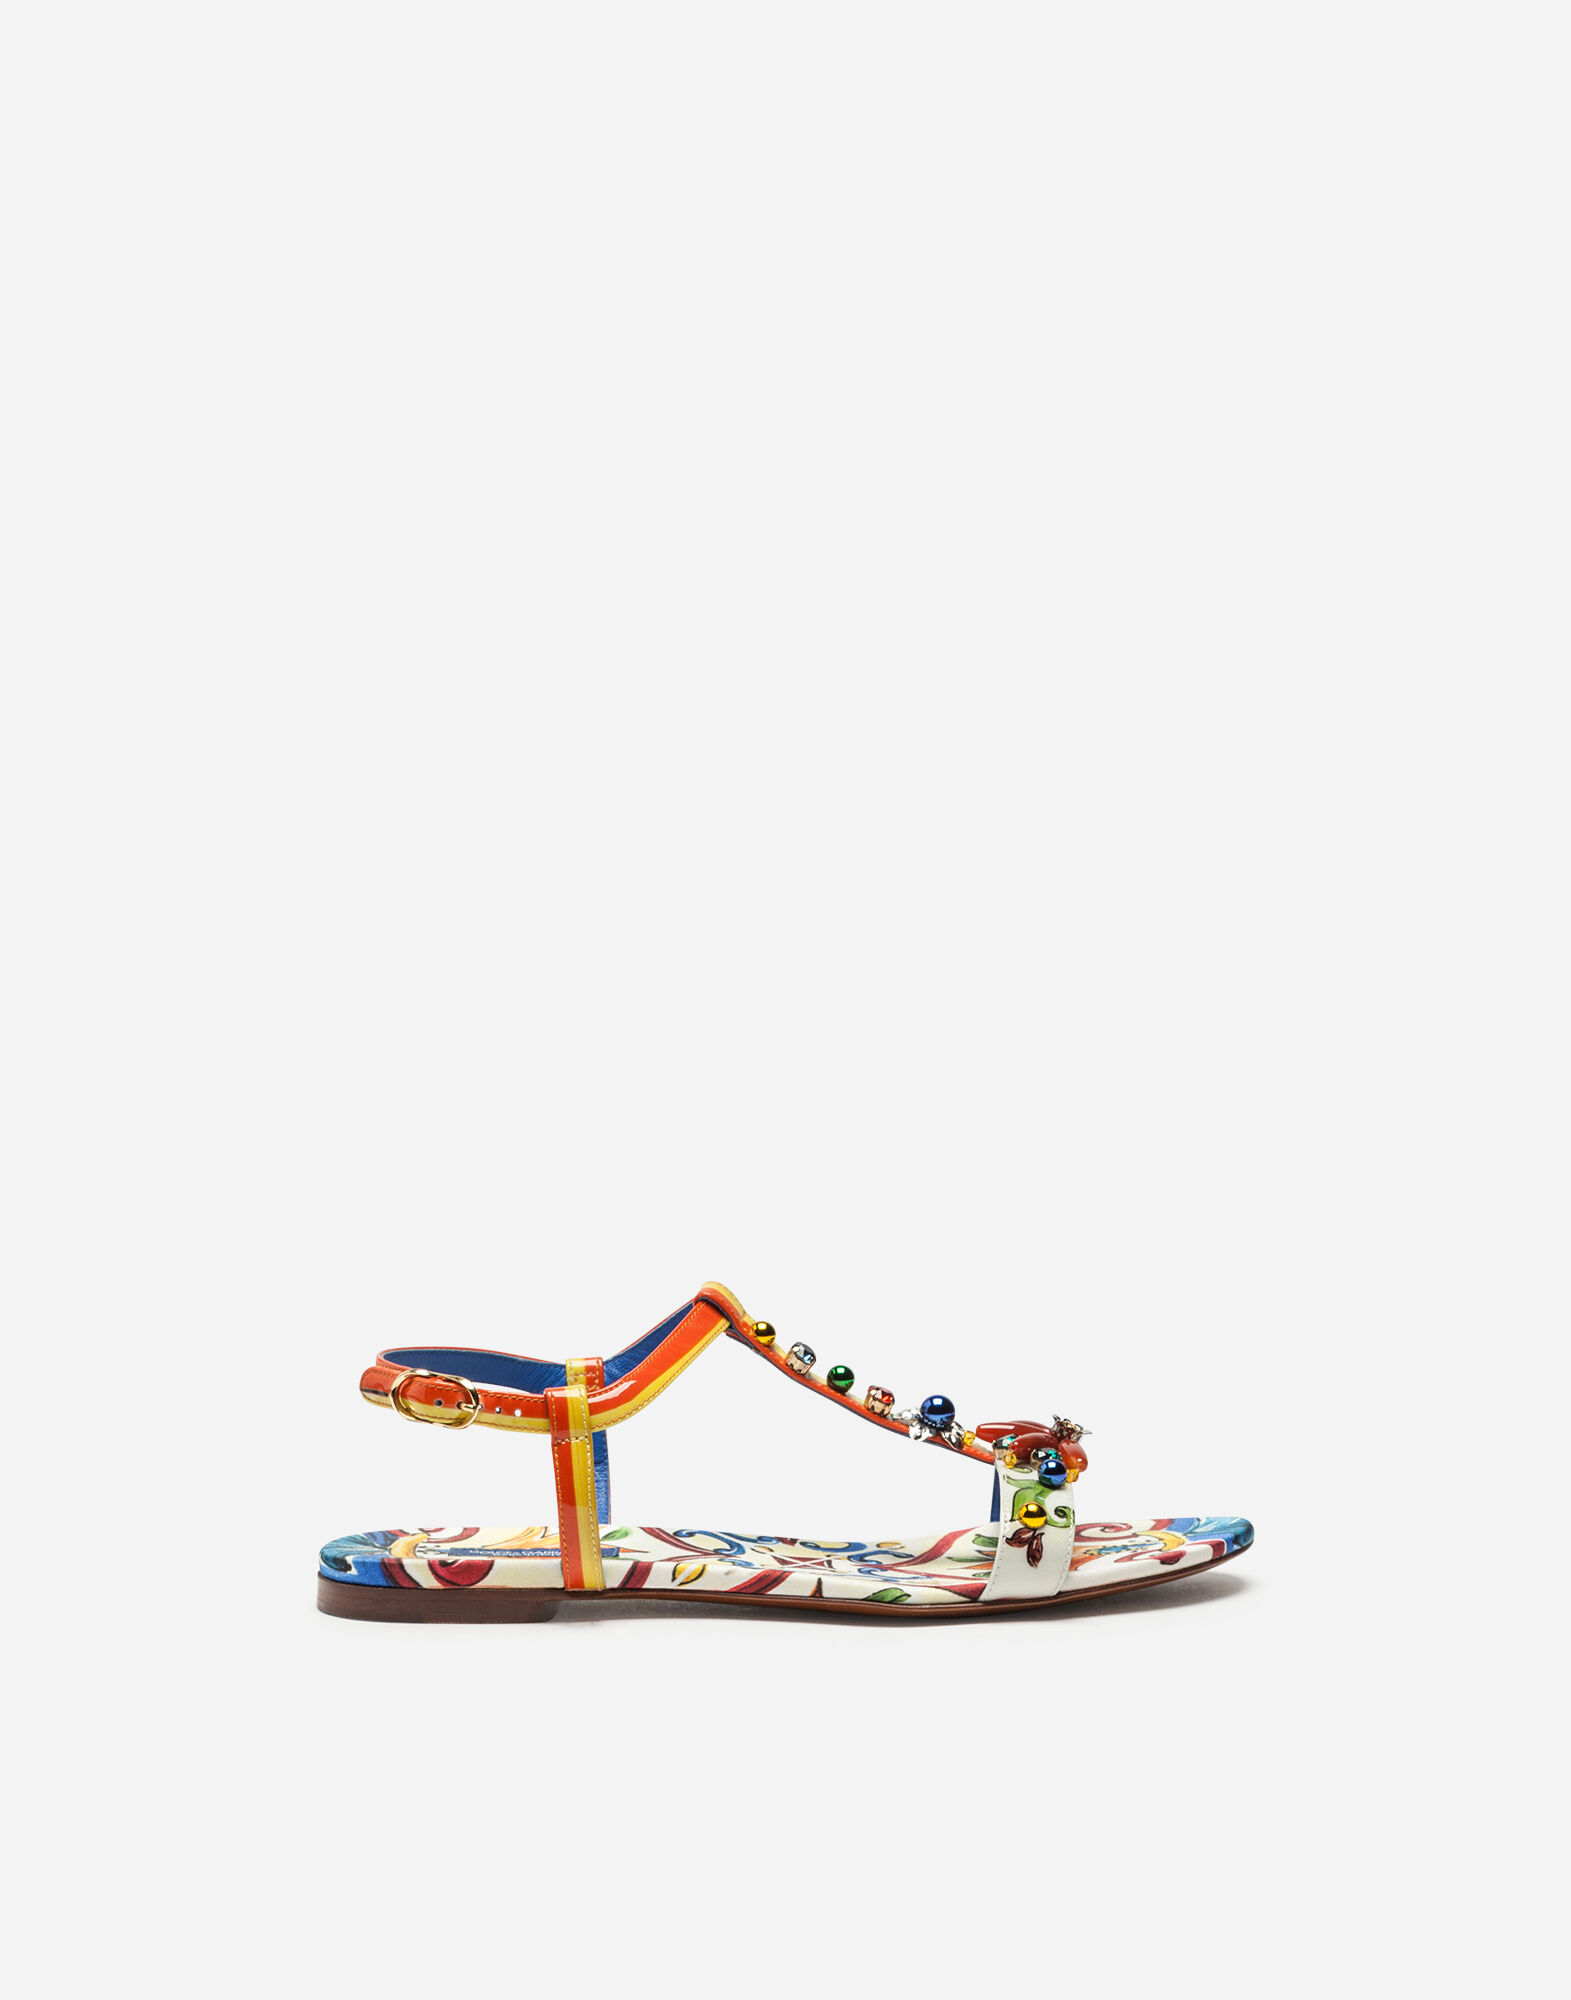 Dolce & Gabbana  SANDAL IN PRINTED PATENT LEATHER WITH EMBROIDERY